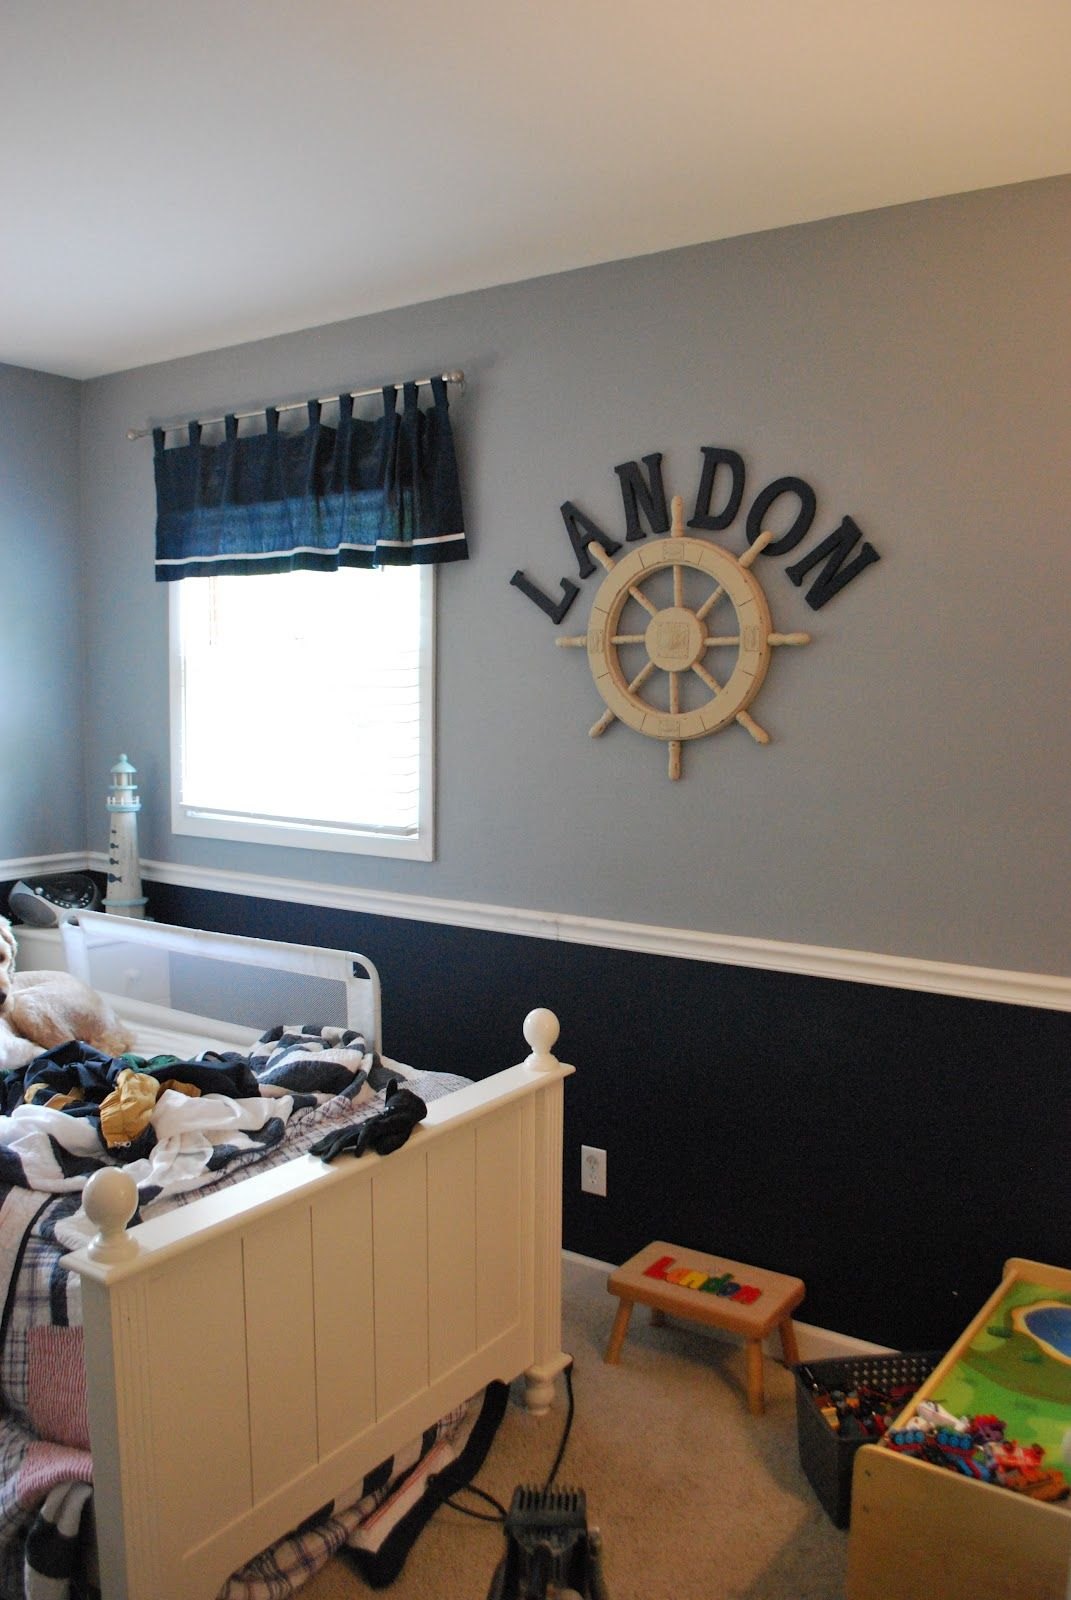 Paint Colors For Baby Boy Nursery: I Live The Name Above The Ship Wheel, But I Would Probably